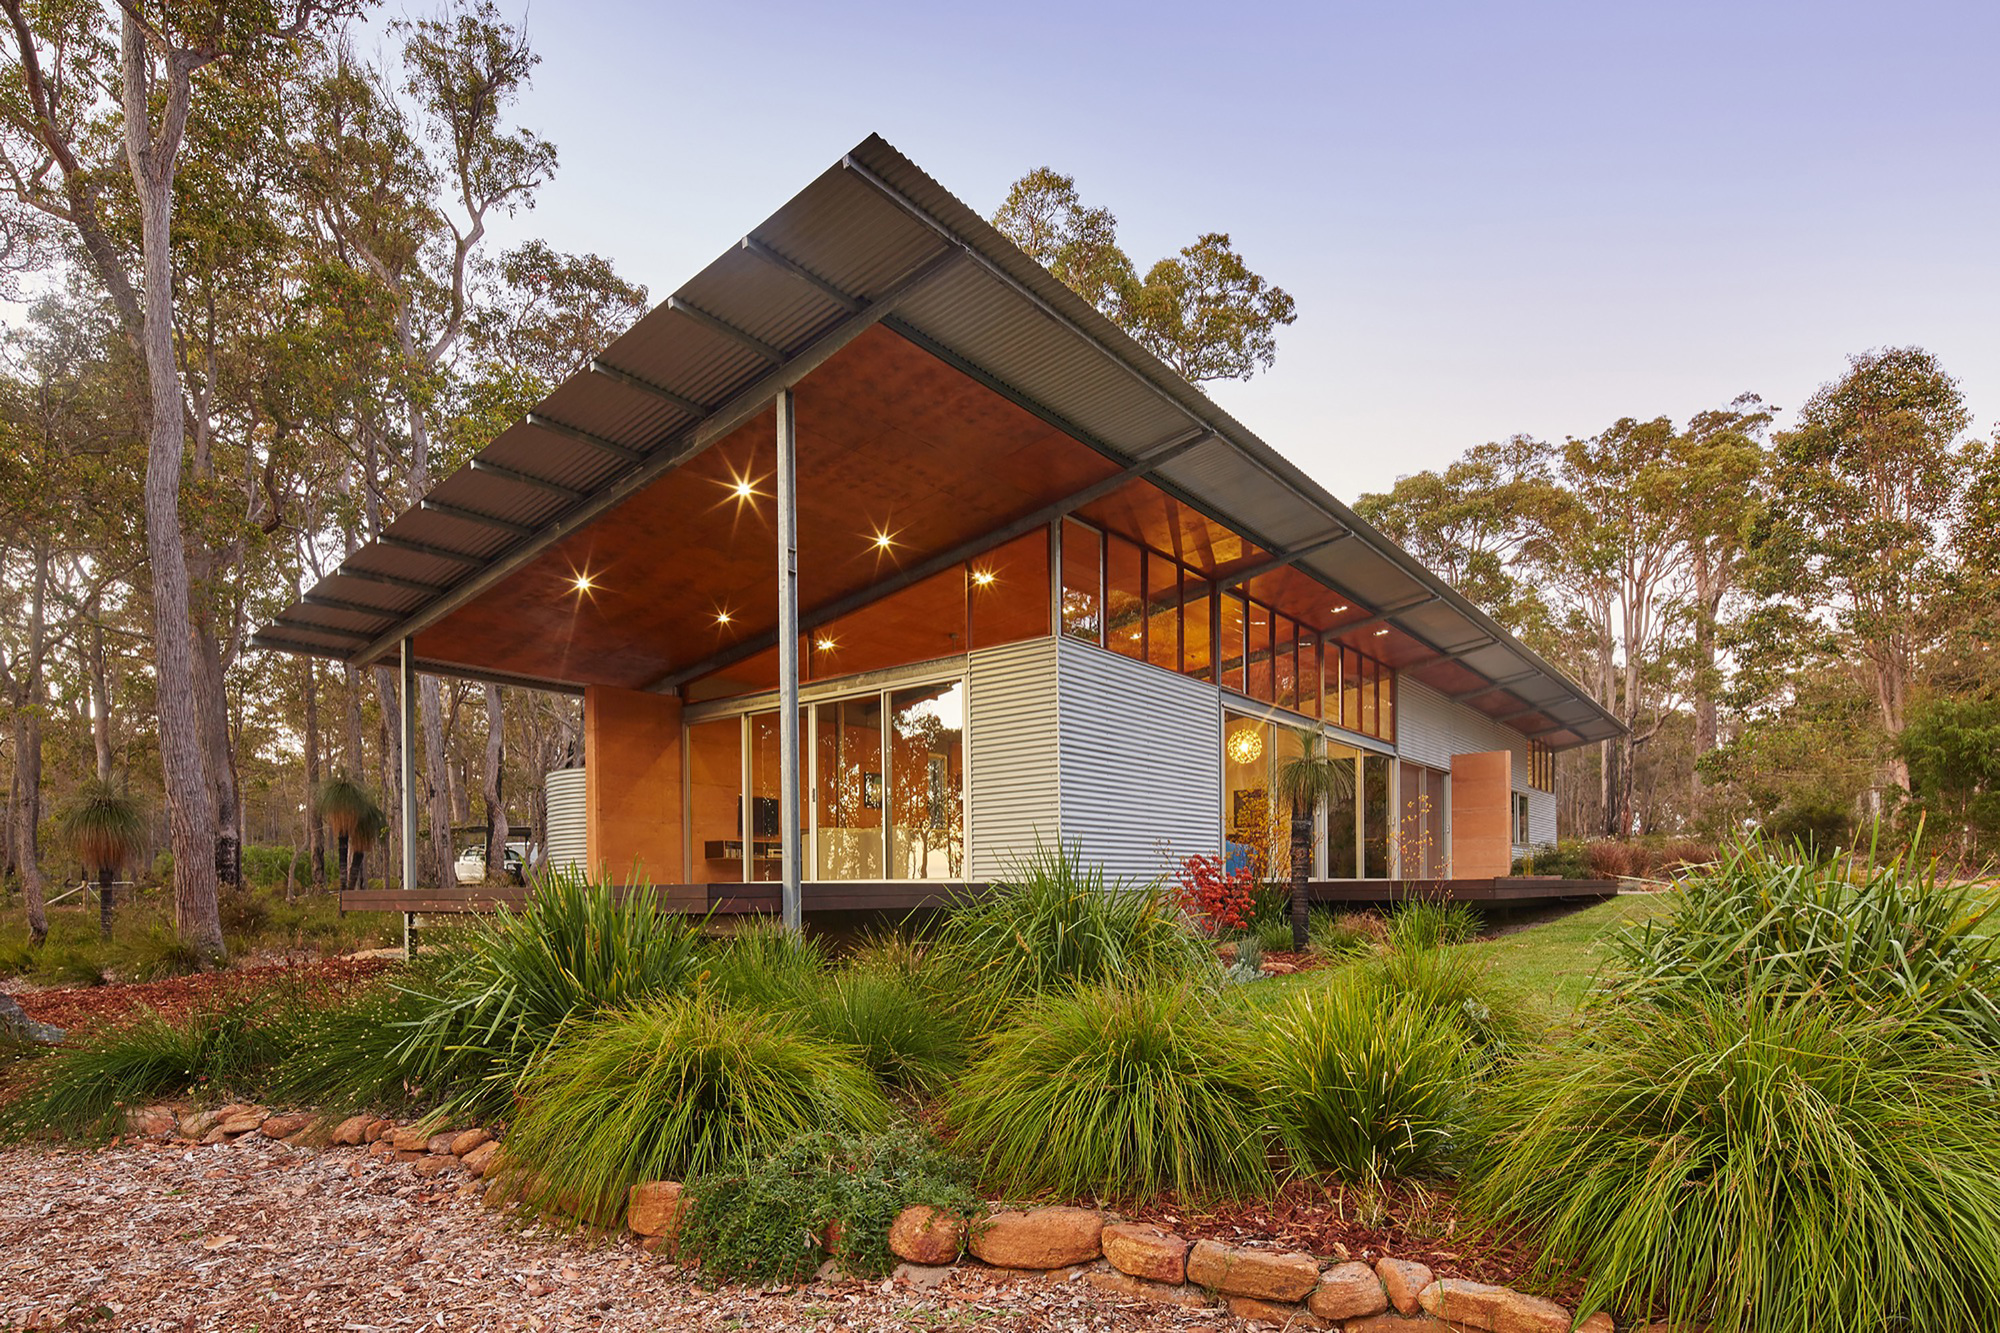 Perfect Bush House By Archterra Architects (via Lunchbox Architect)